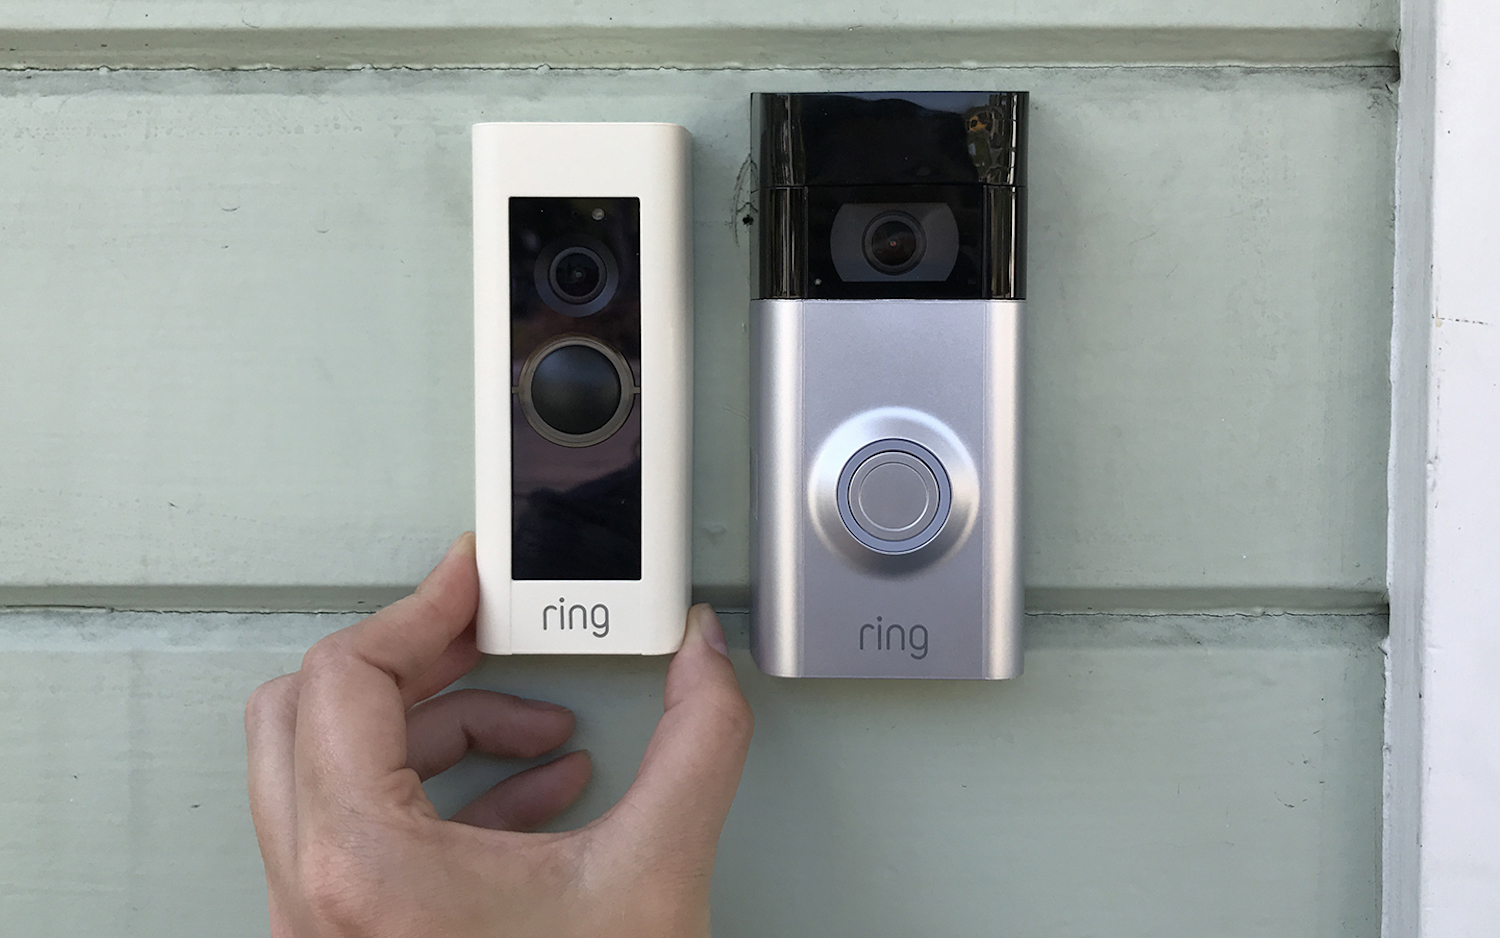 Photo of 2 different ring video doorbell